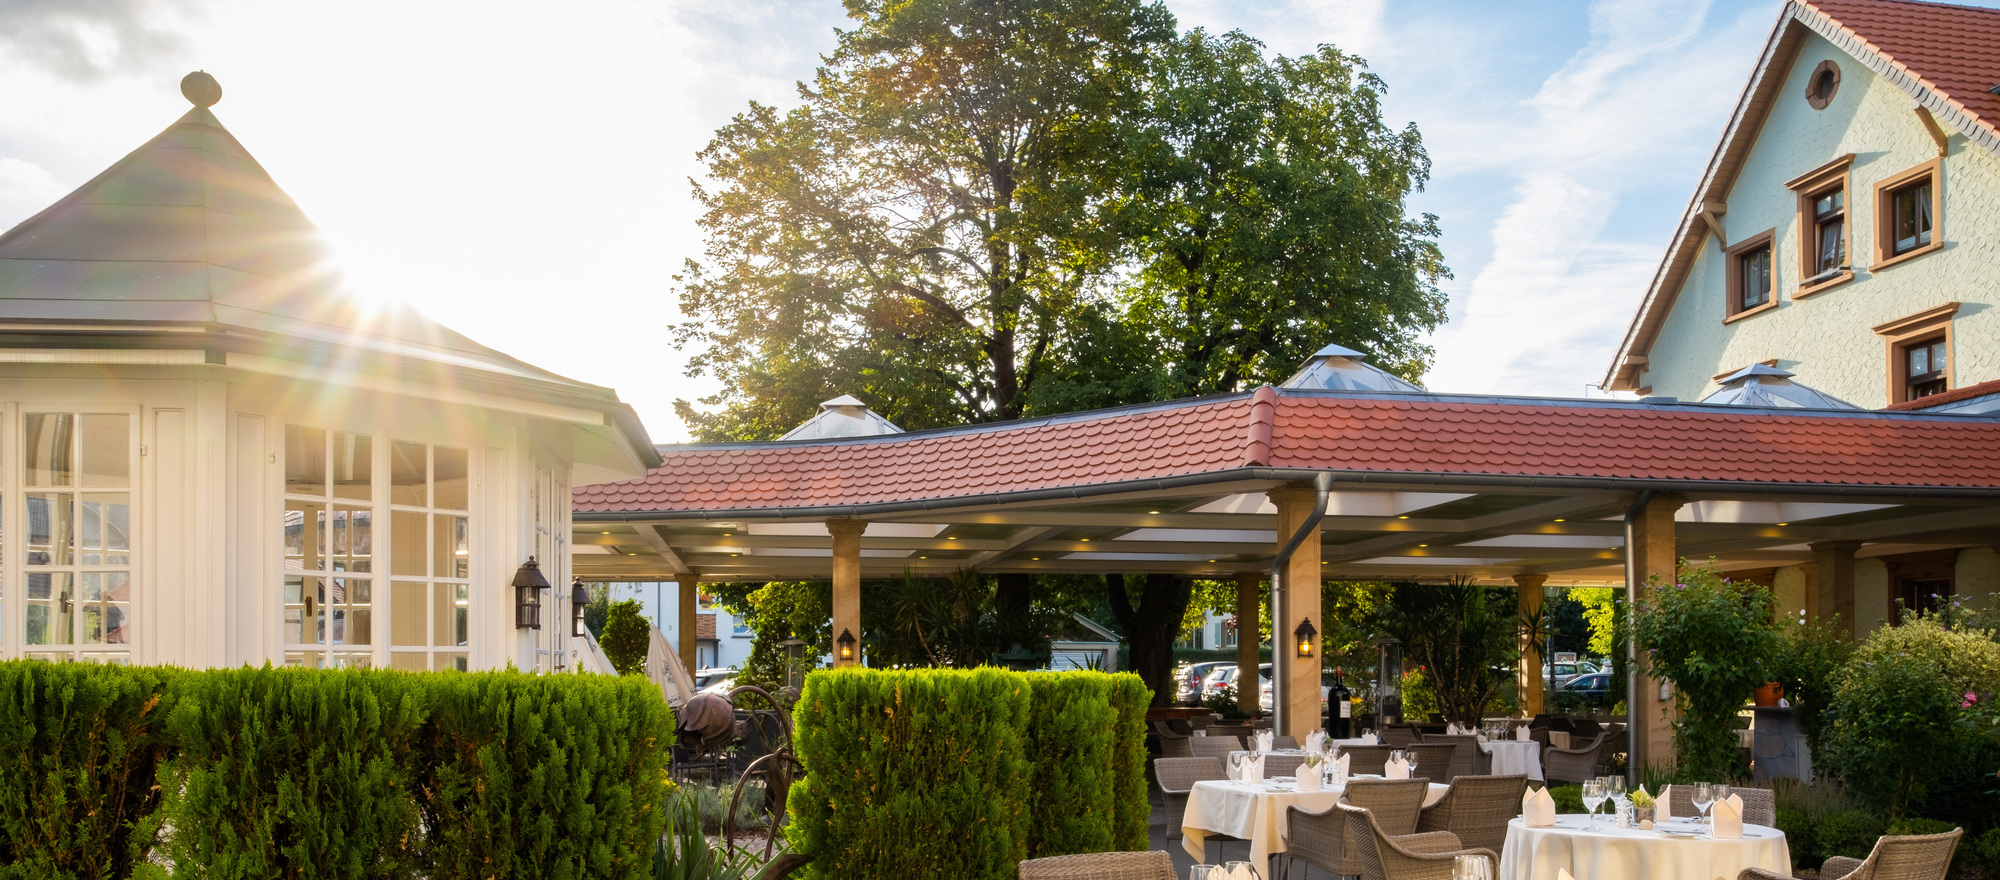 Pavilion for your event at the Ringhotel Winzerhof in Rauenberg, 4 stars hotel in the Kraichgau region